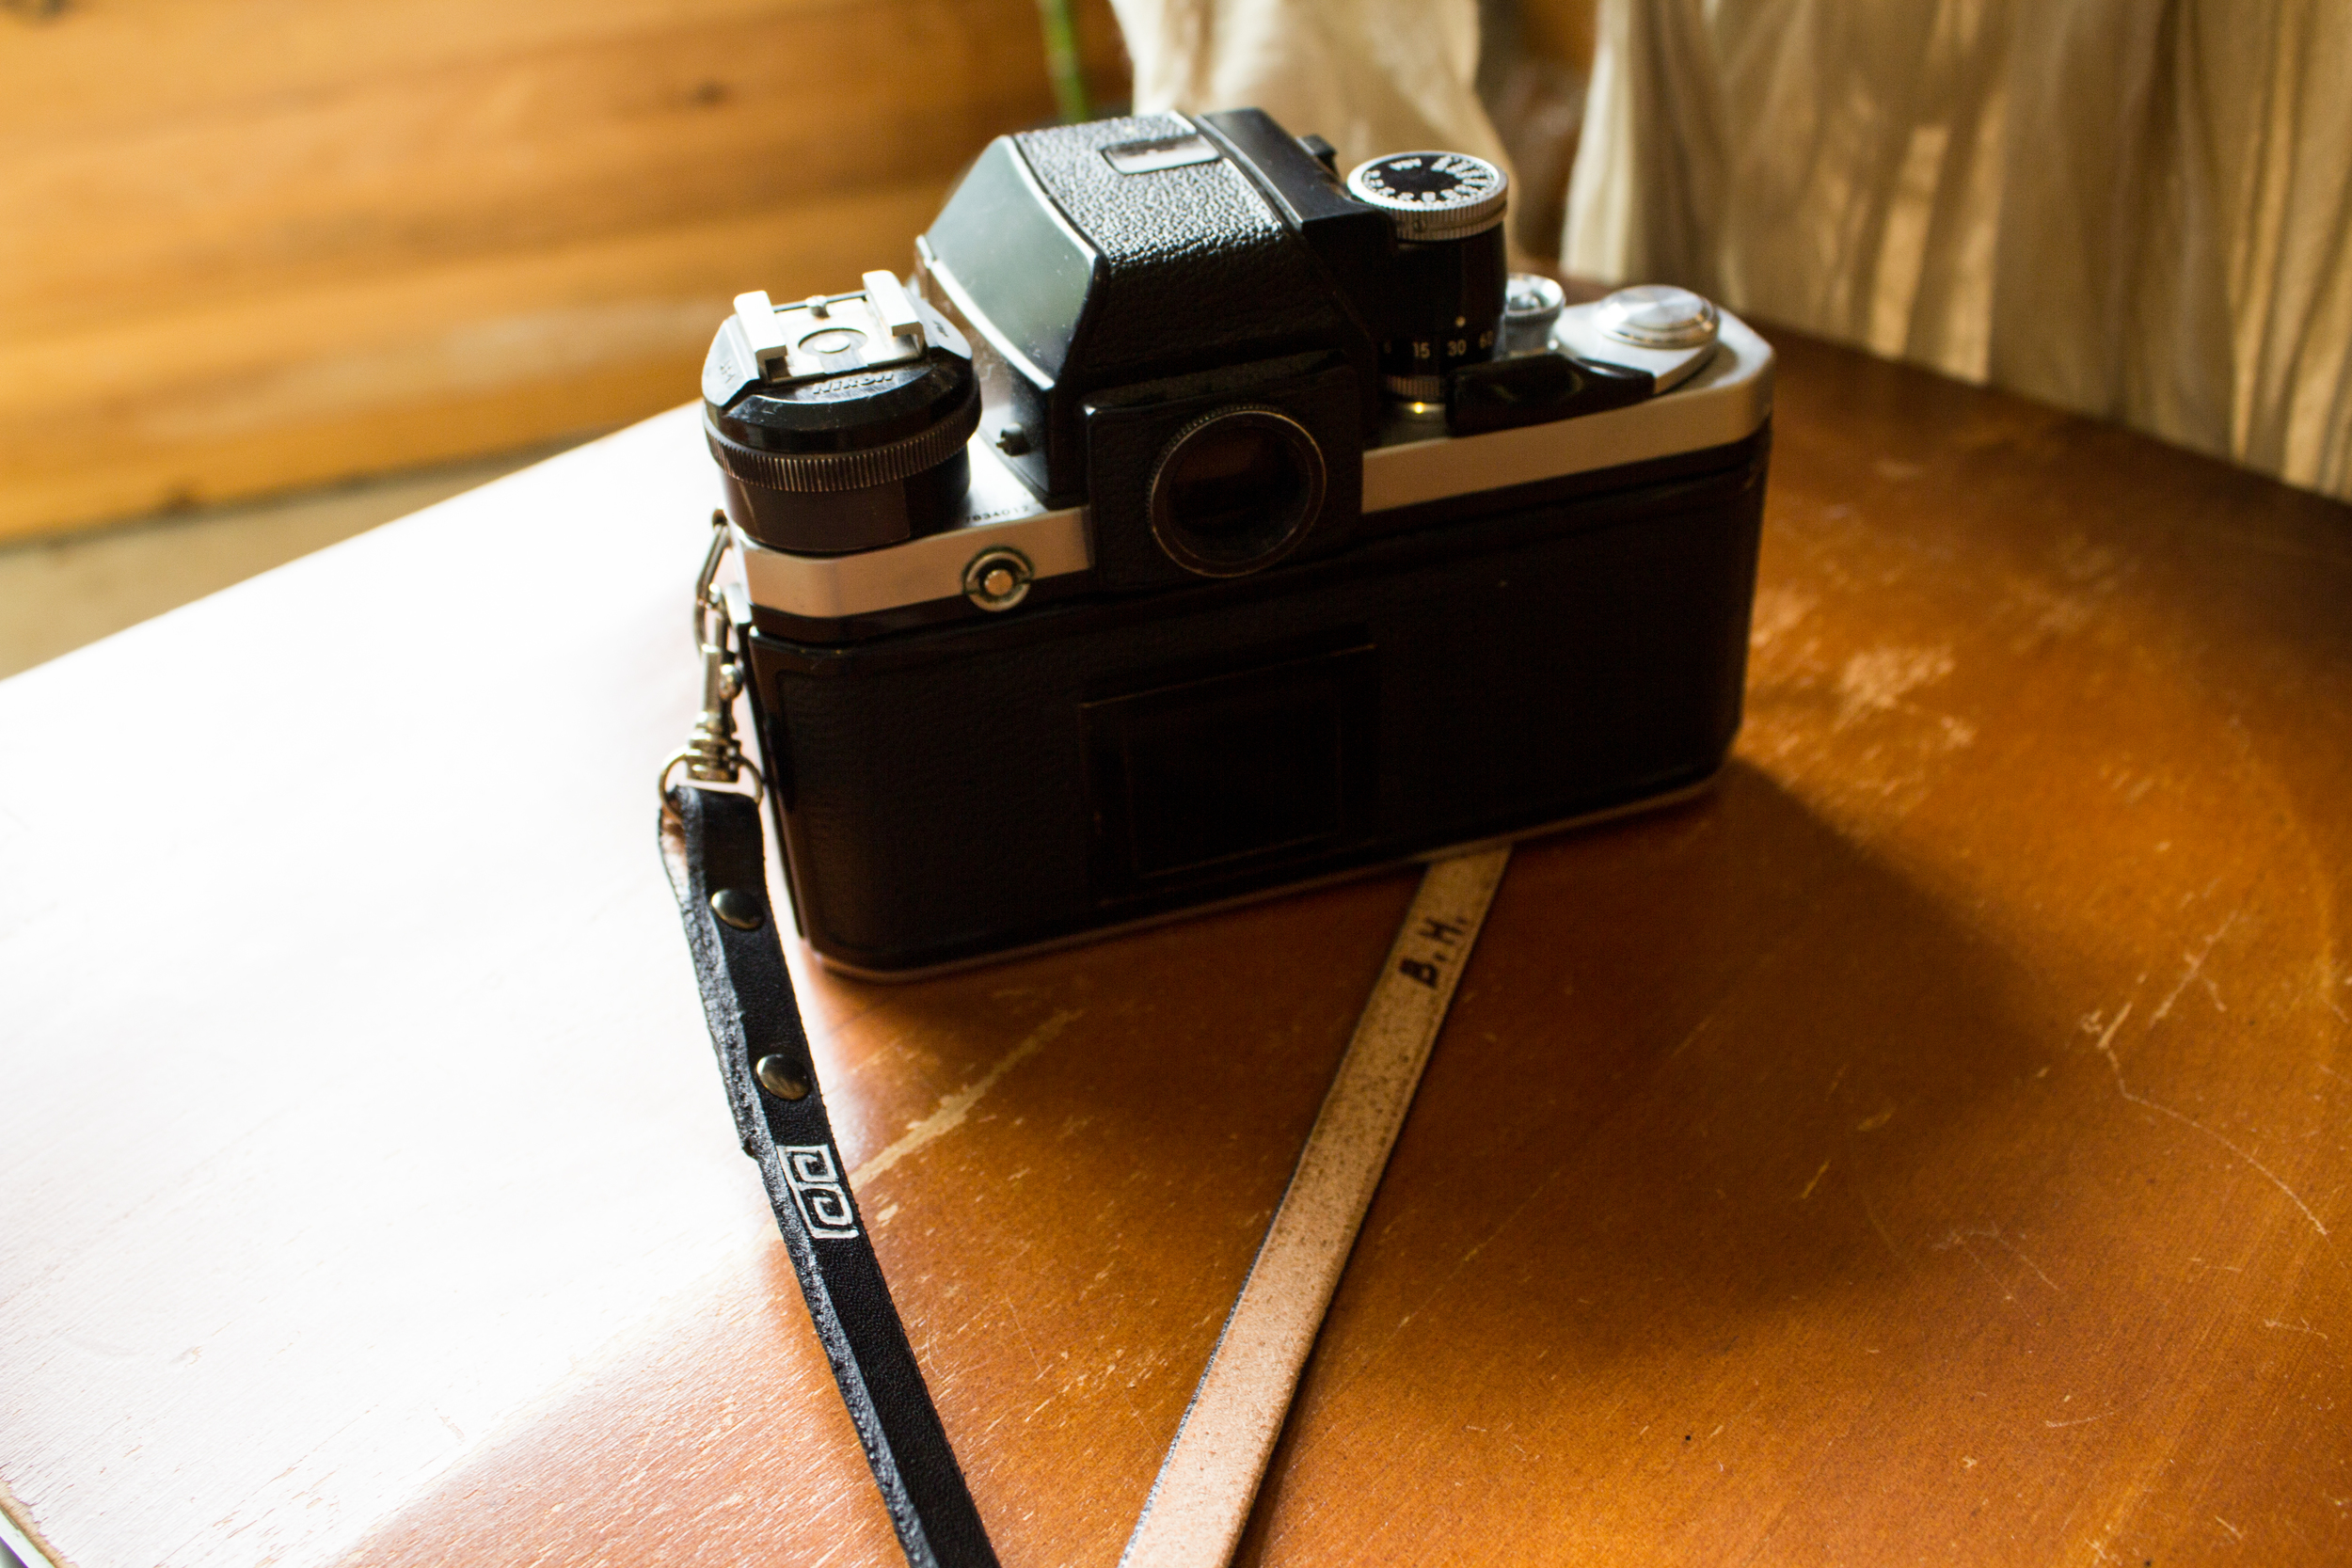 leather-camera-strap-for-wrist-and-neck-4.jpg